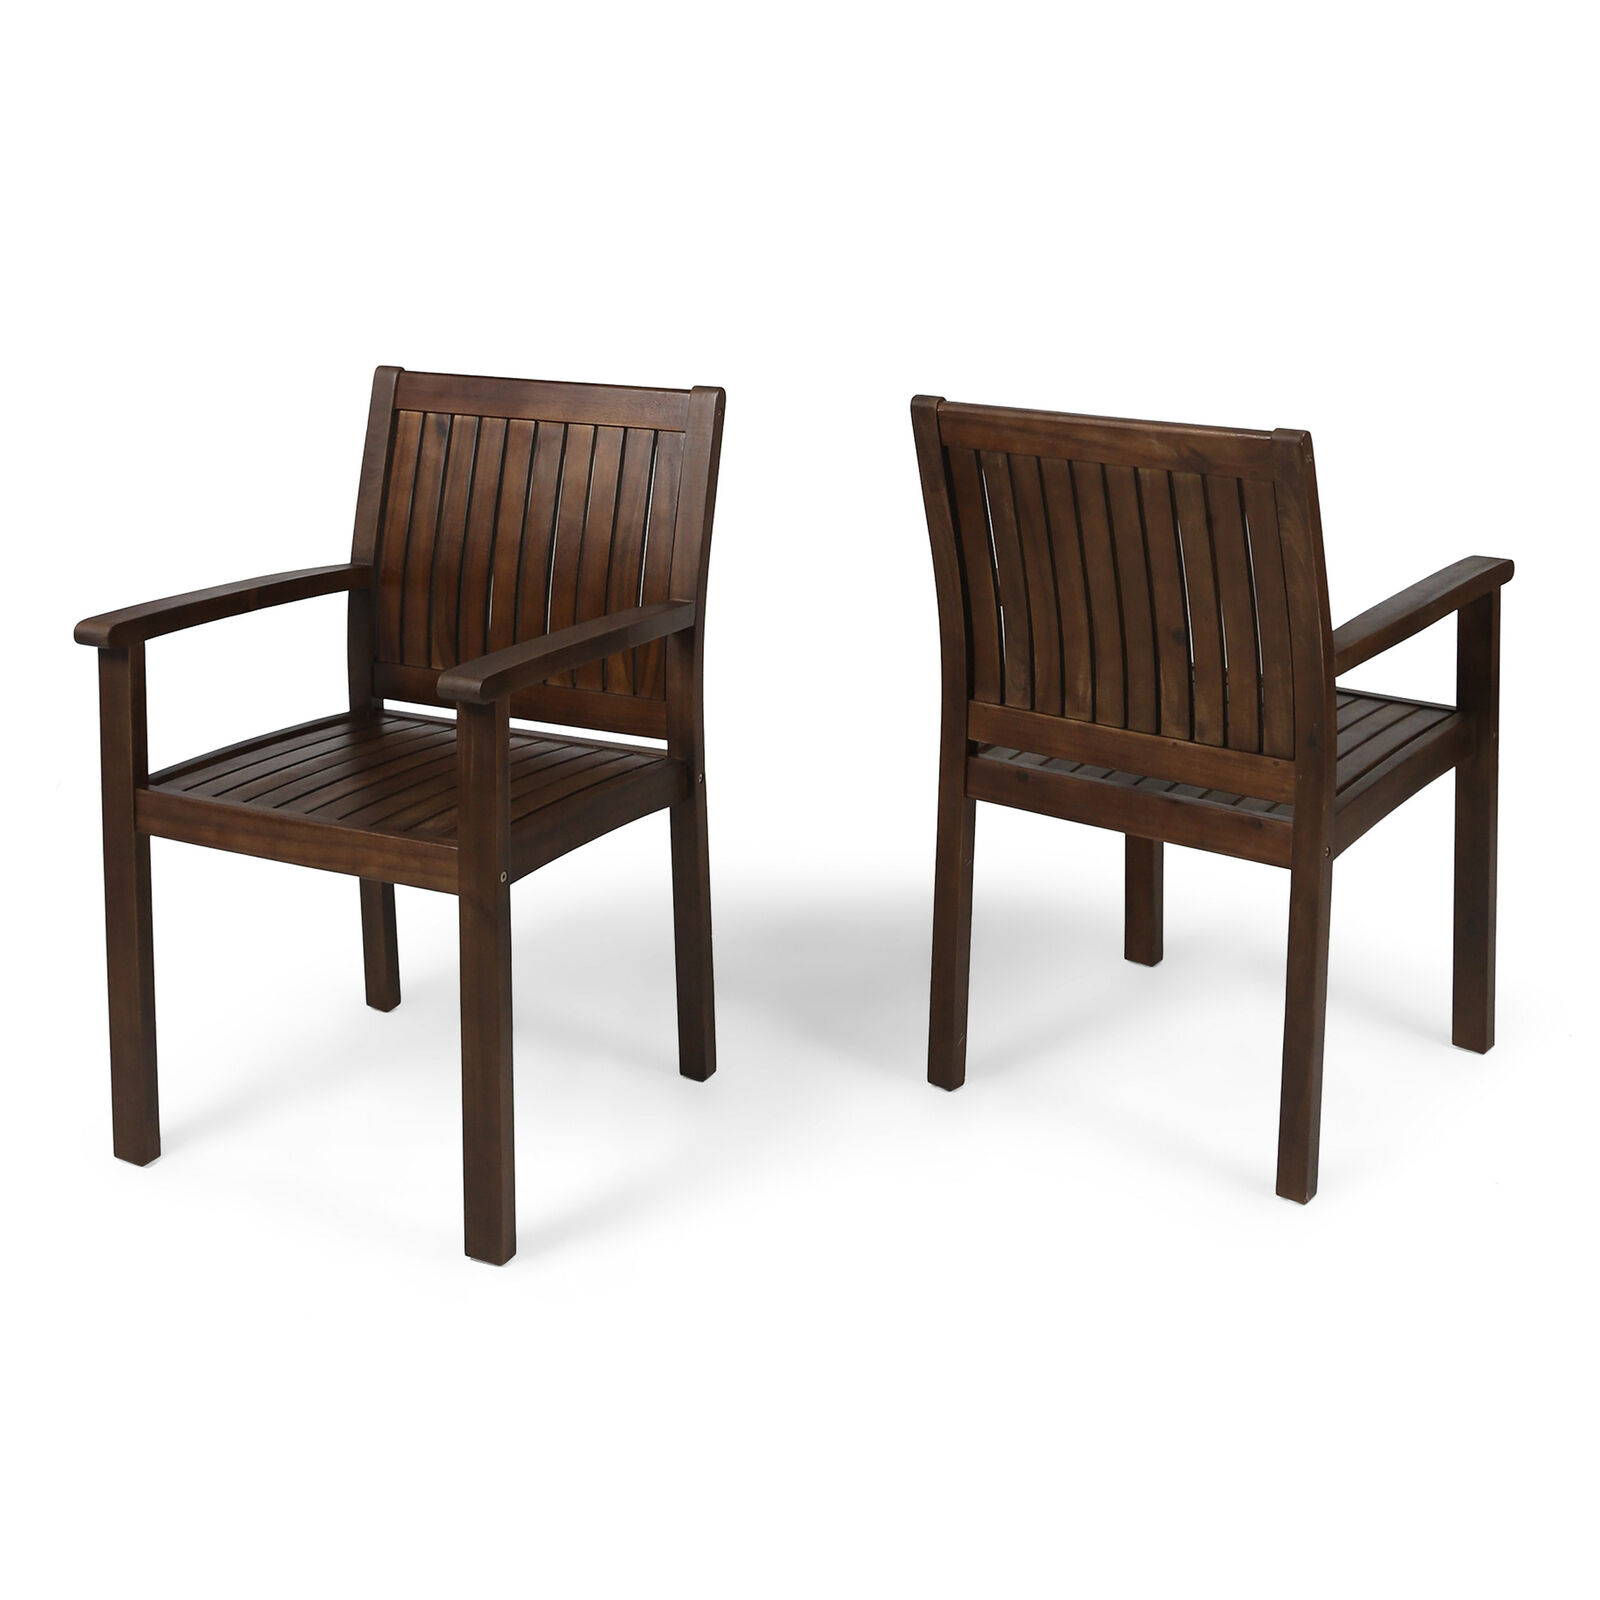 Kylan Outdoor Acacia Wood Dining Chairs (Set of 2) Home & Garden